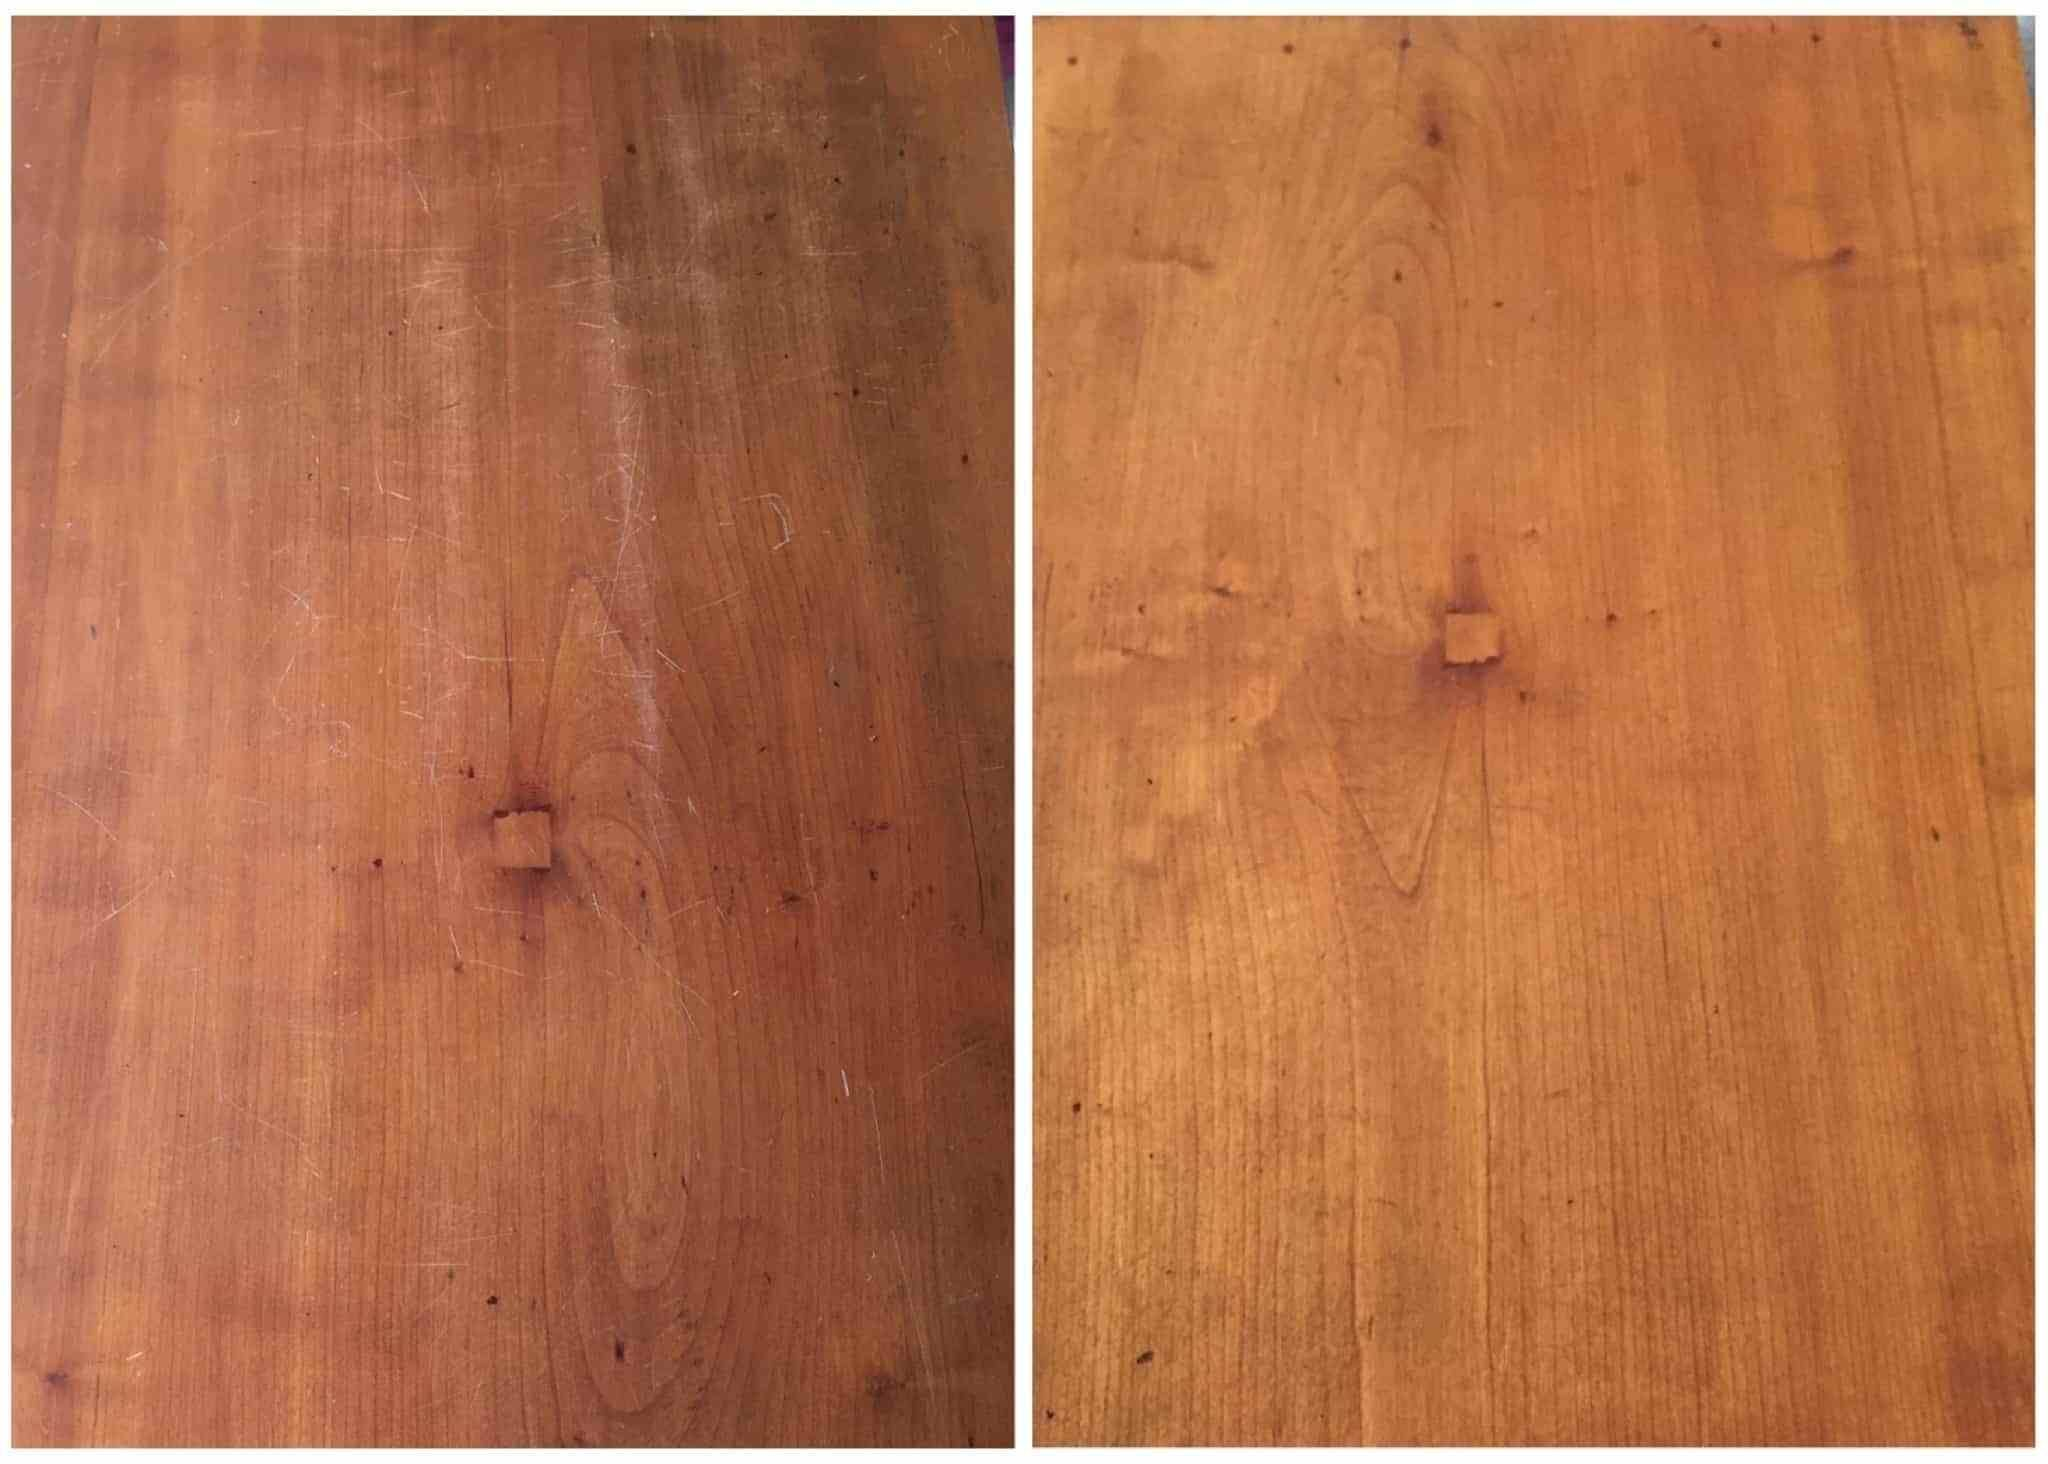 Refinishing Furniture To Make It Look New Again With Only 2 Household Items Refinishingwood Refinishingfurniture